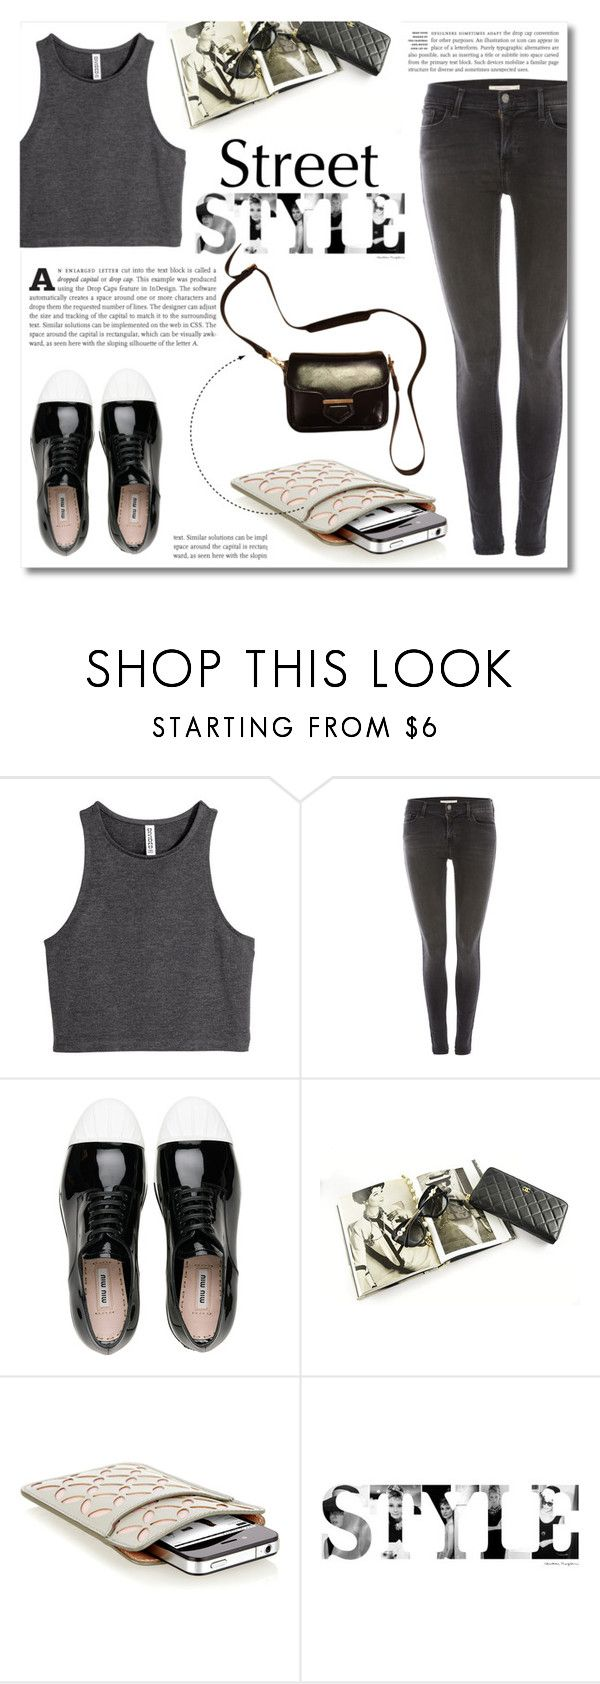 """~Casual Friday~"" by dolly-valkyrie ❤ liked on Polyvore featuring H&M, Levi's, Miu Miu, Chanel, Alaïa and Tod's"